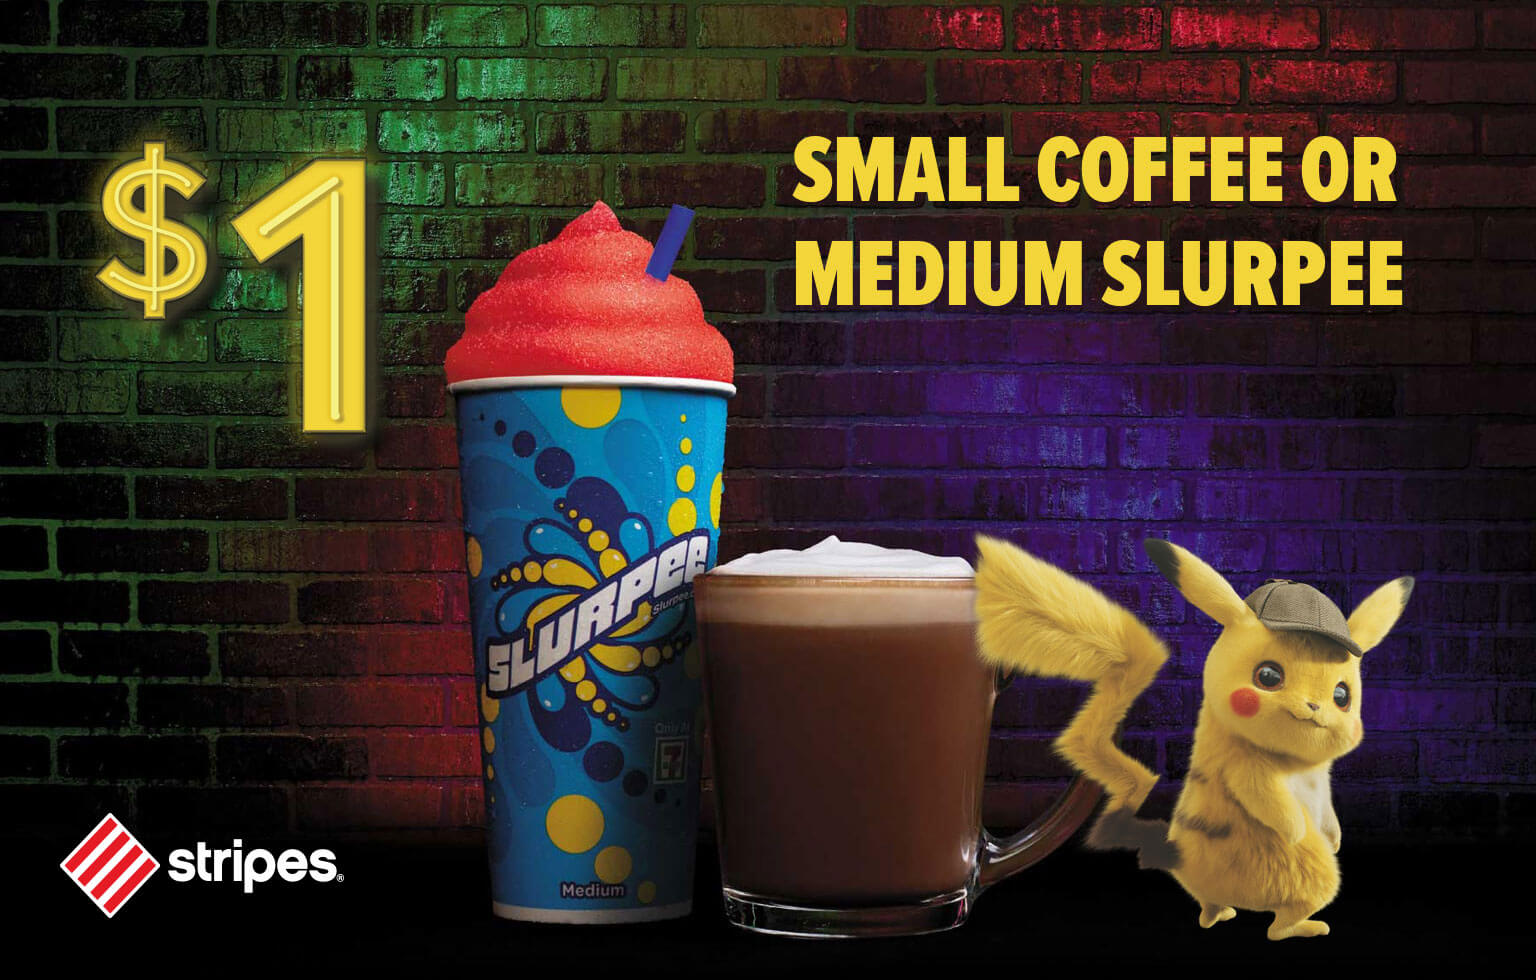 One Dollar Small Coffee or Medium Slurpee